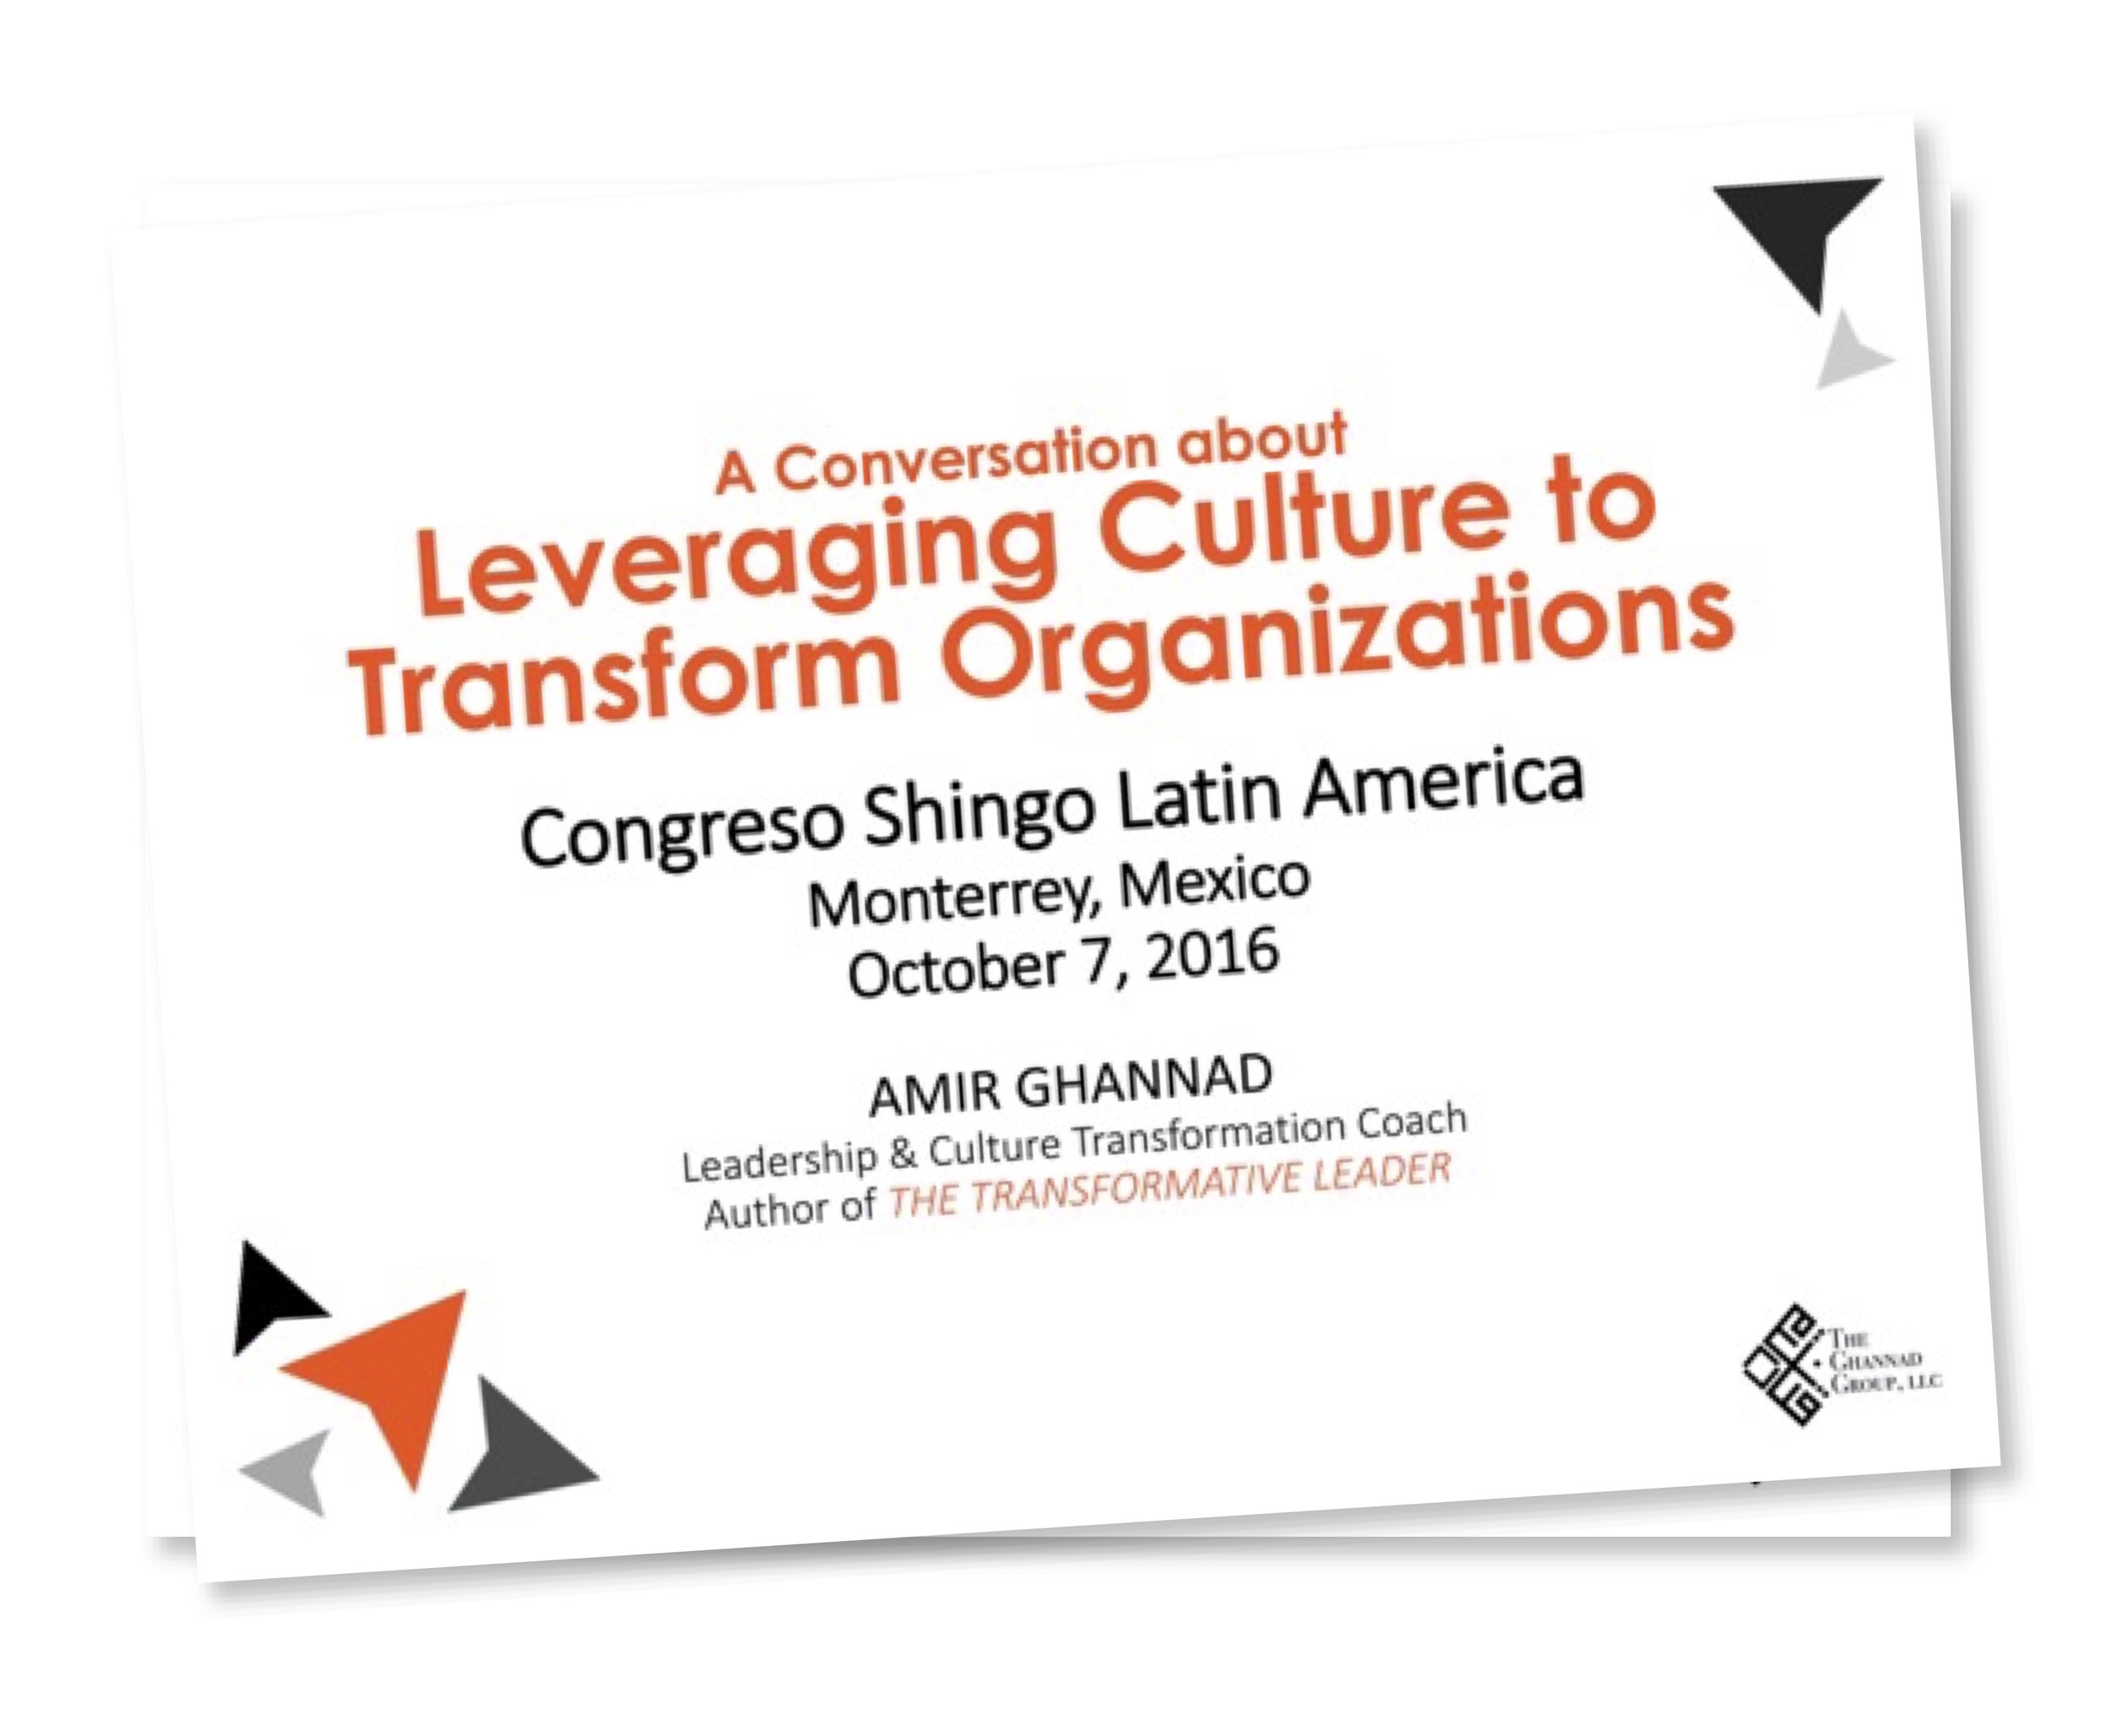 Amir Ghannad Congreso Shingo October 2016 Final.jpg